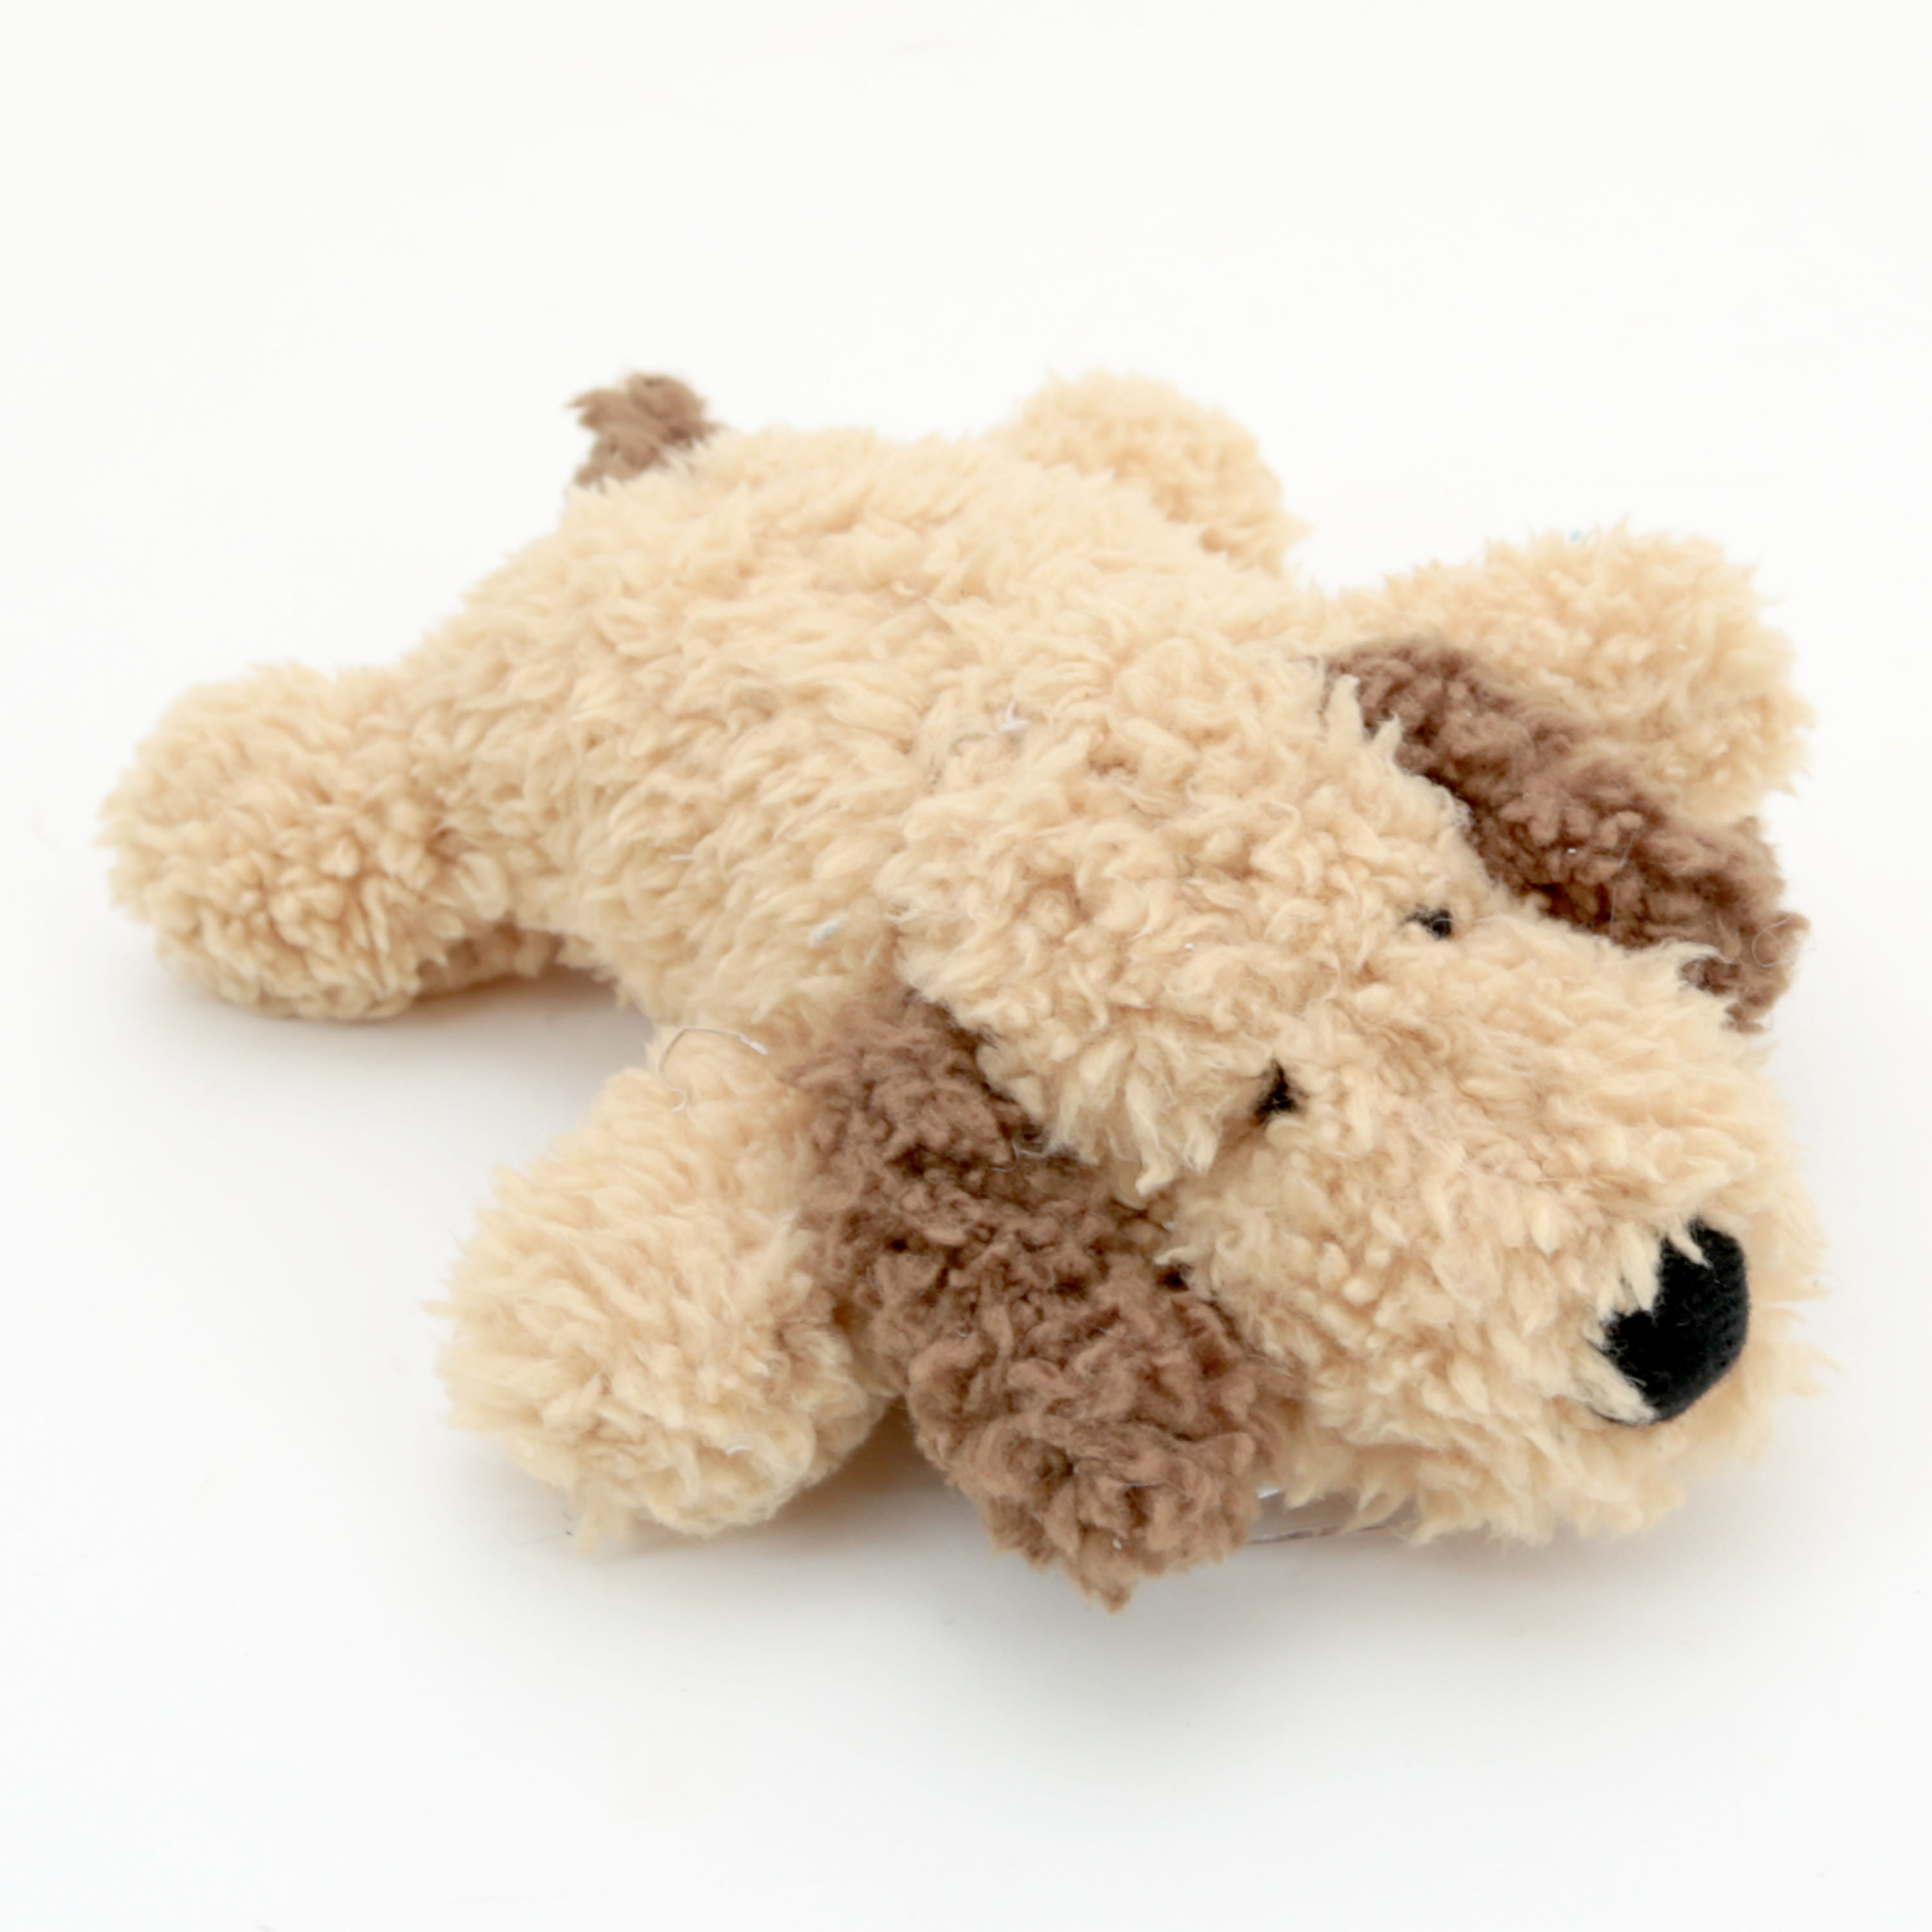 7-inch Squeaky Plush Floppy Puppy Dog Toy - Honey Color